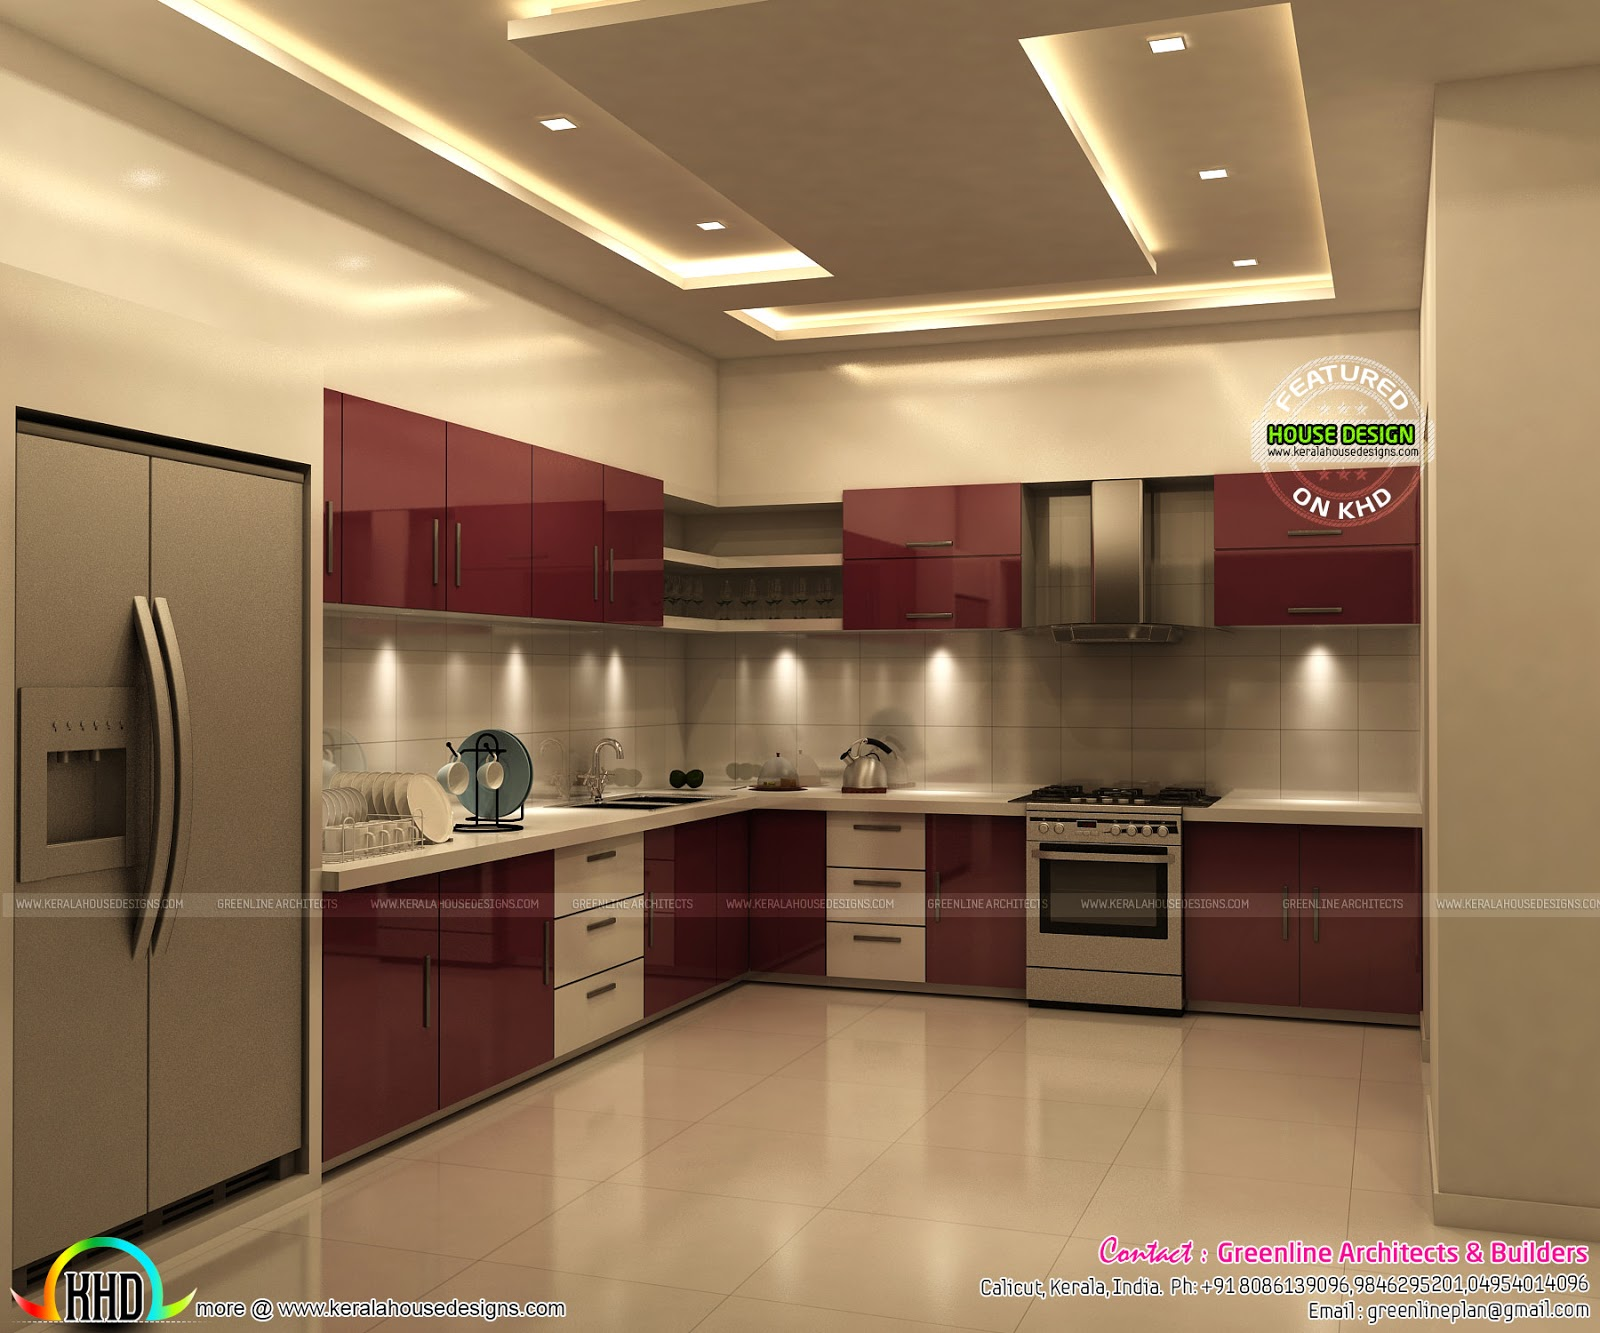 Superb kitchen and bedroom interiors kerala home design for Kitchen interior design styles